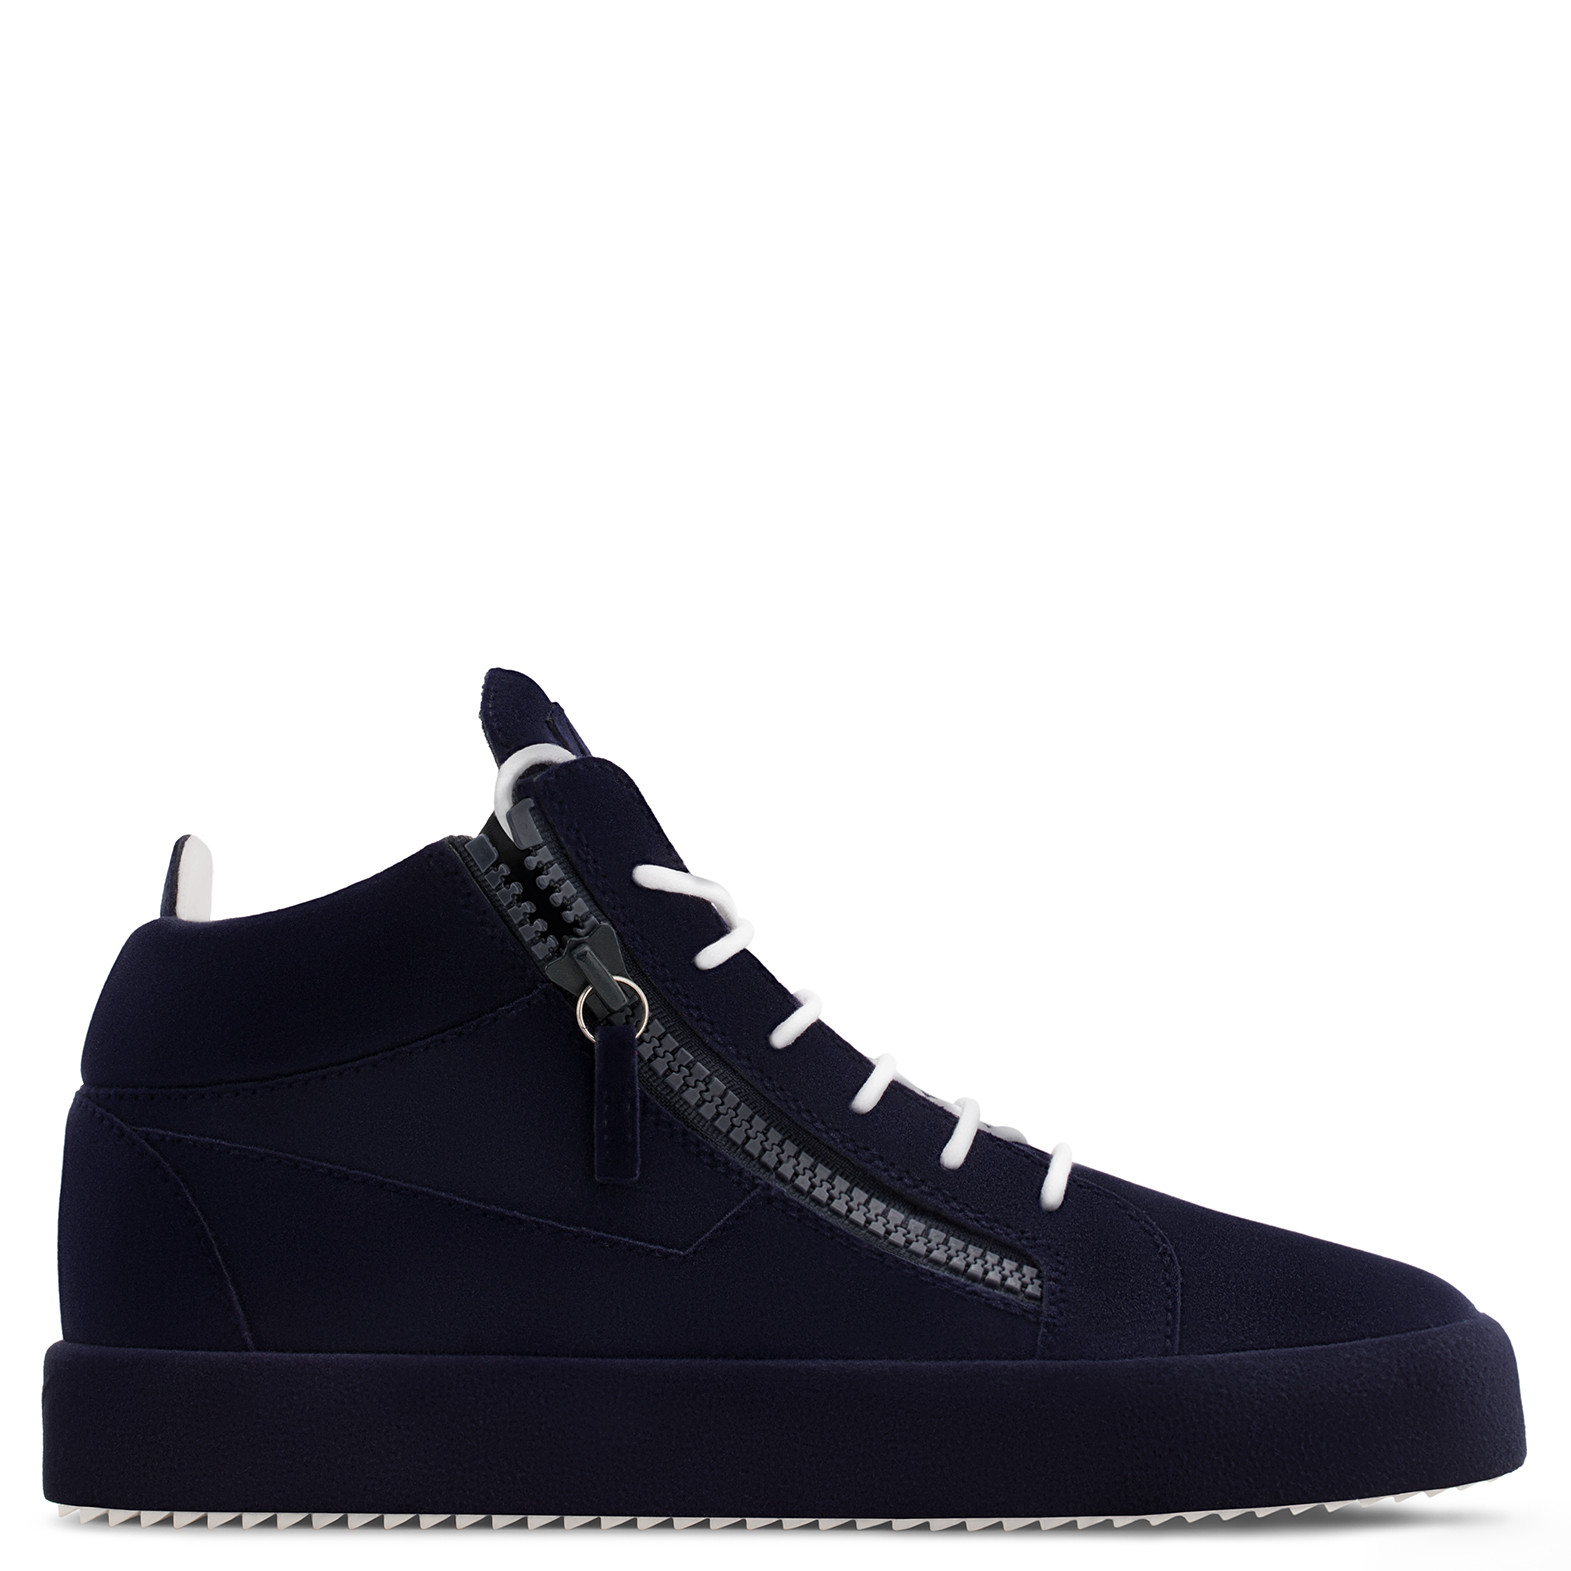 Giuseppe ZanottiUnfinished Collection: Dark mid-top sneaker THE UNFINISHED 9tZQ9GQ8YK